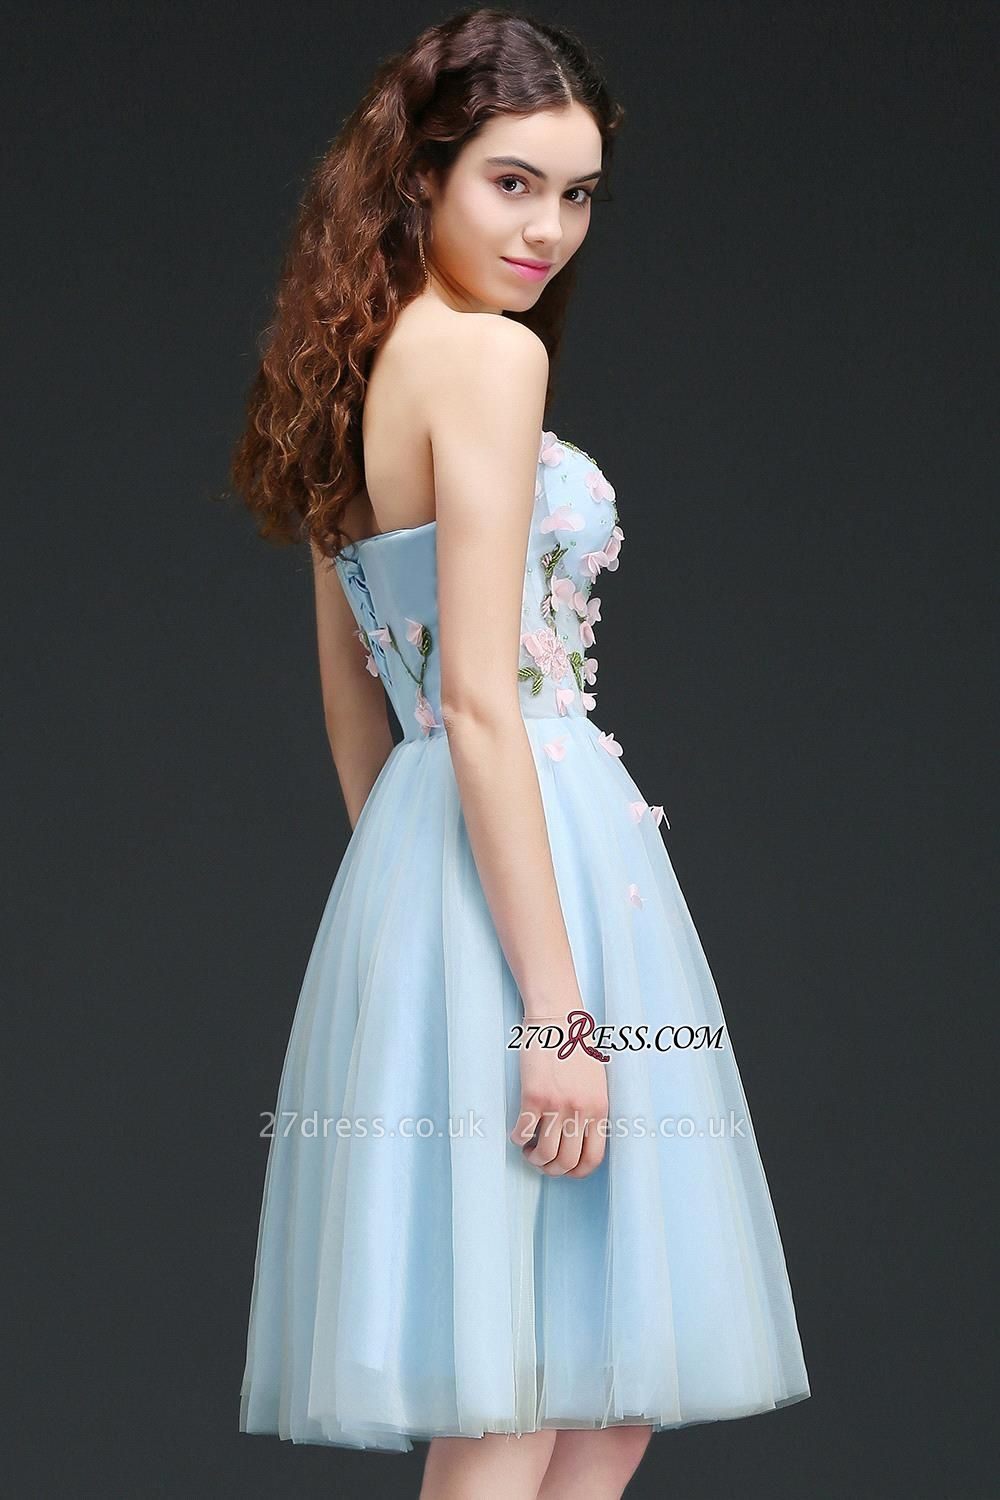 Embroidery Flowers Luxury Sweetheart Lace-Up Tulle Short Homecoming Dress UK